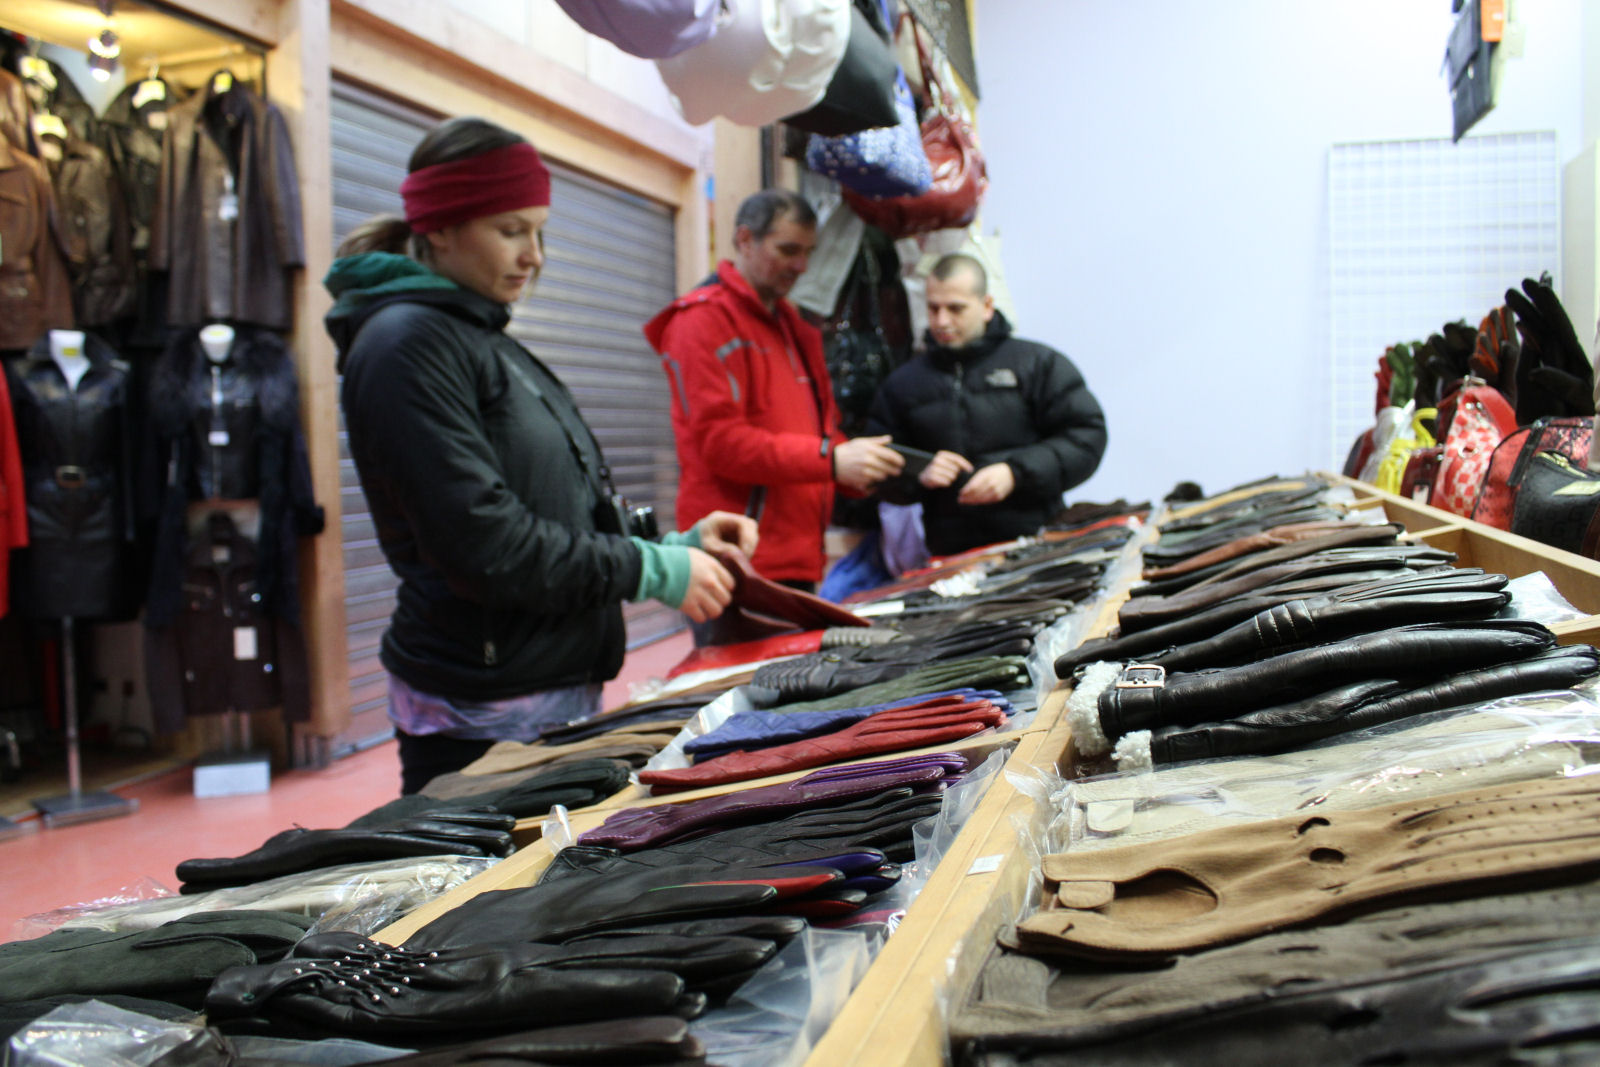 tarvisio-open-air-leather-market-italy